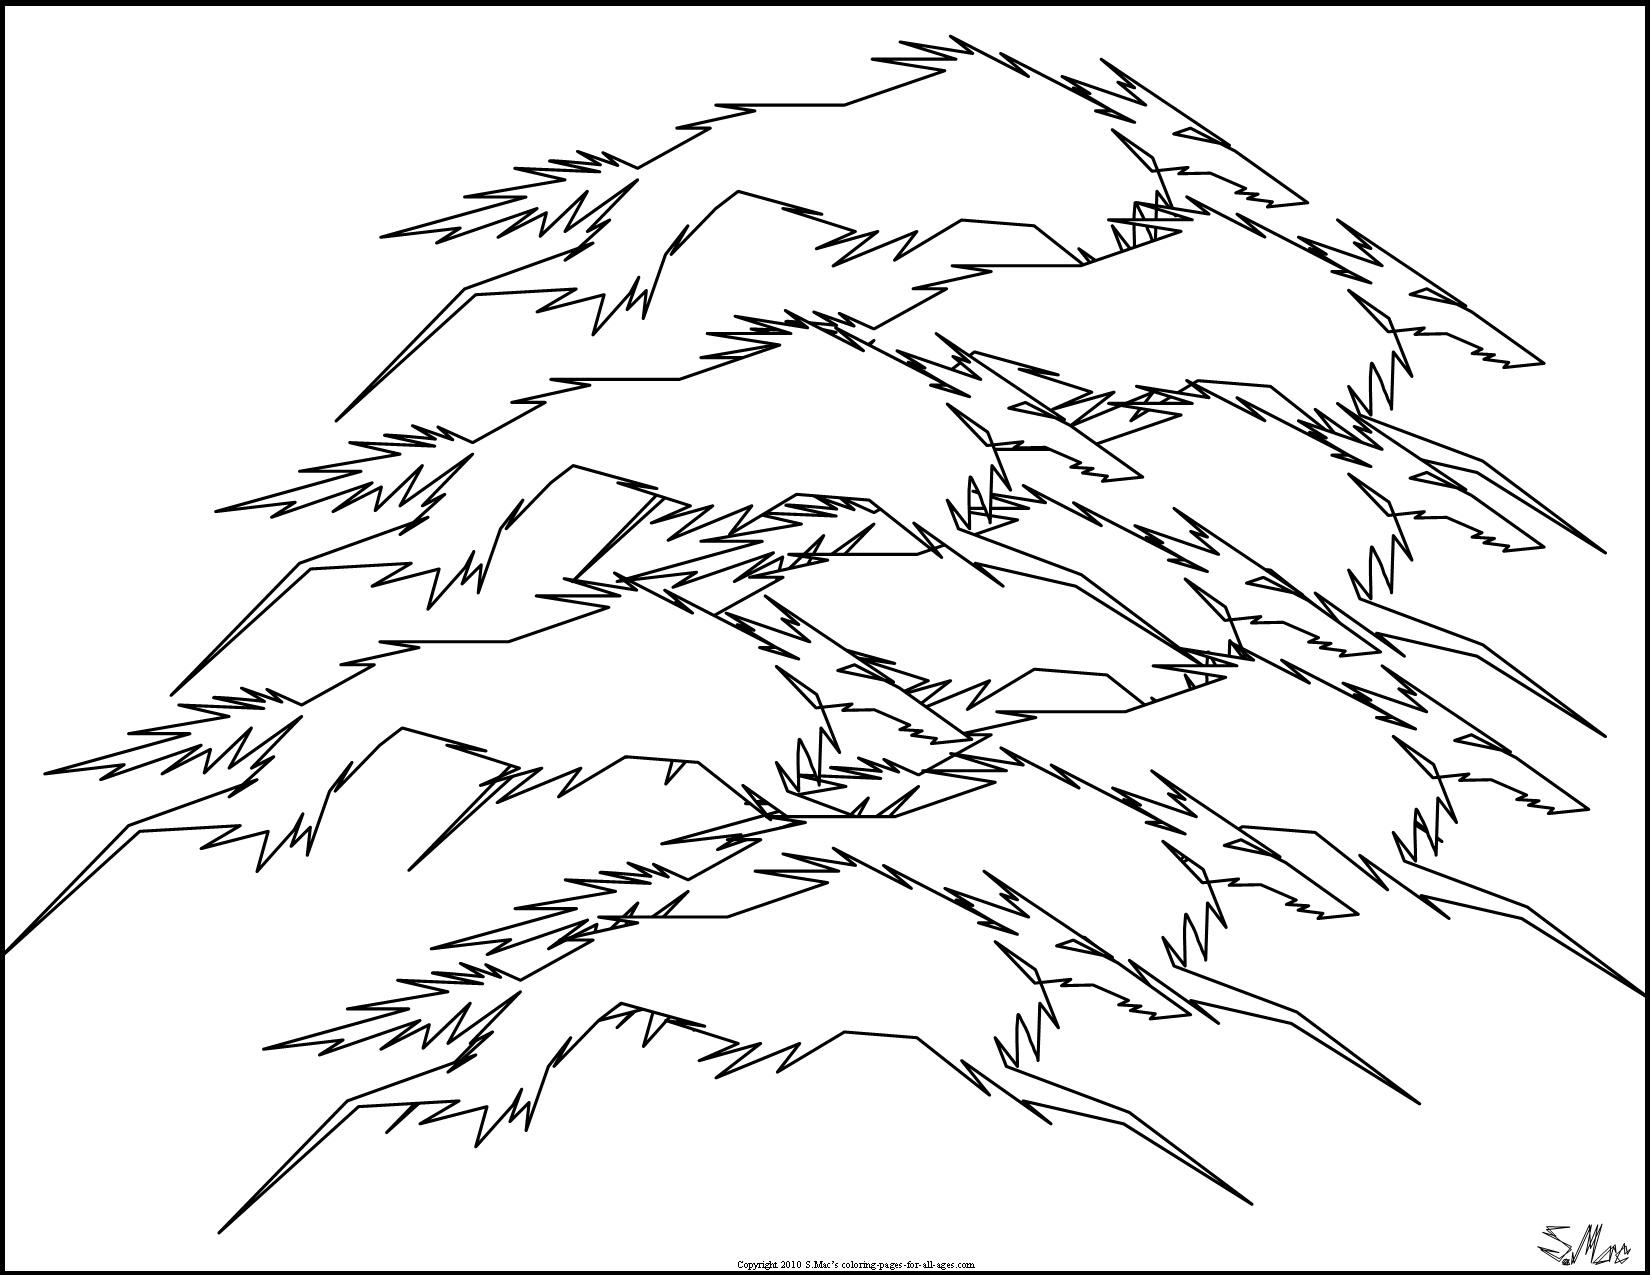 Abstract Coloring Pages - S.Mac's Place to Be